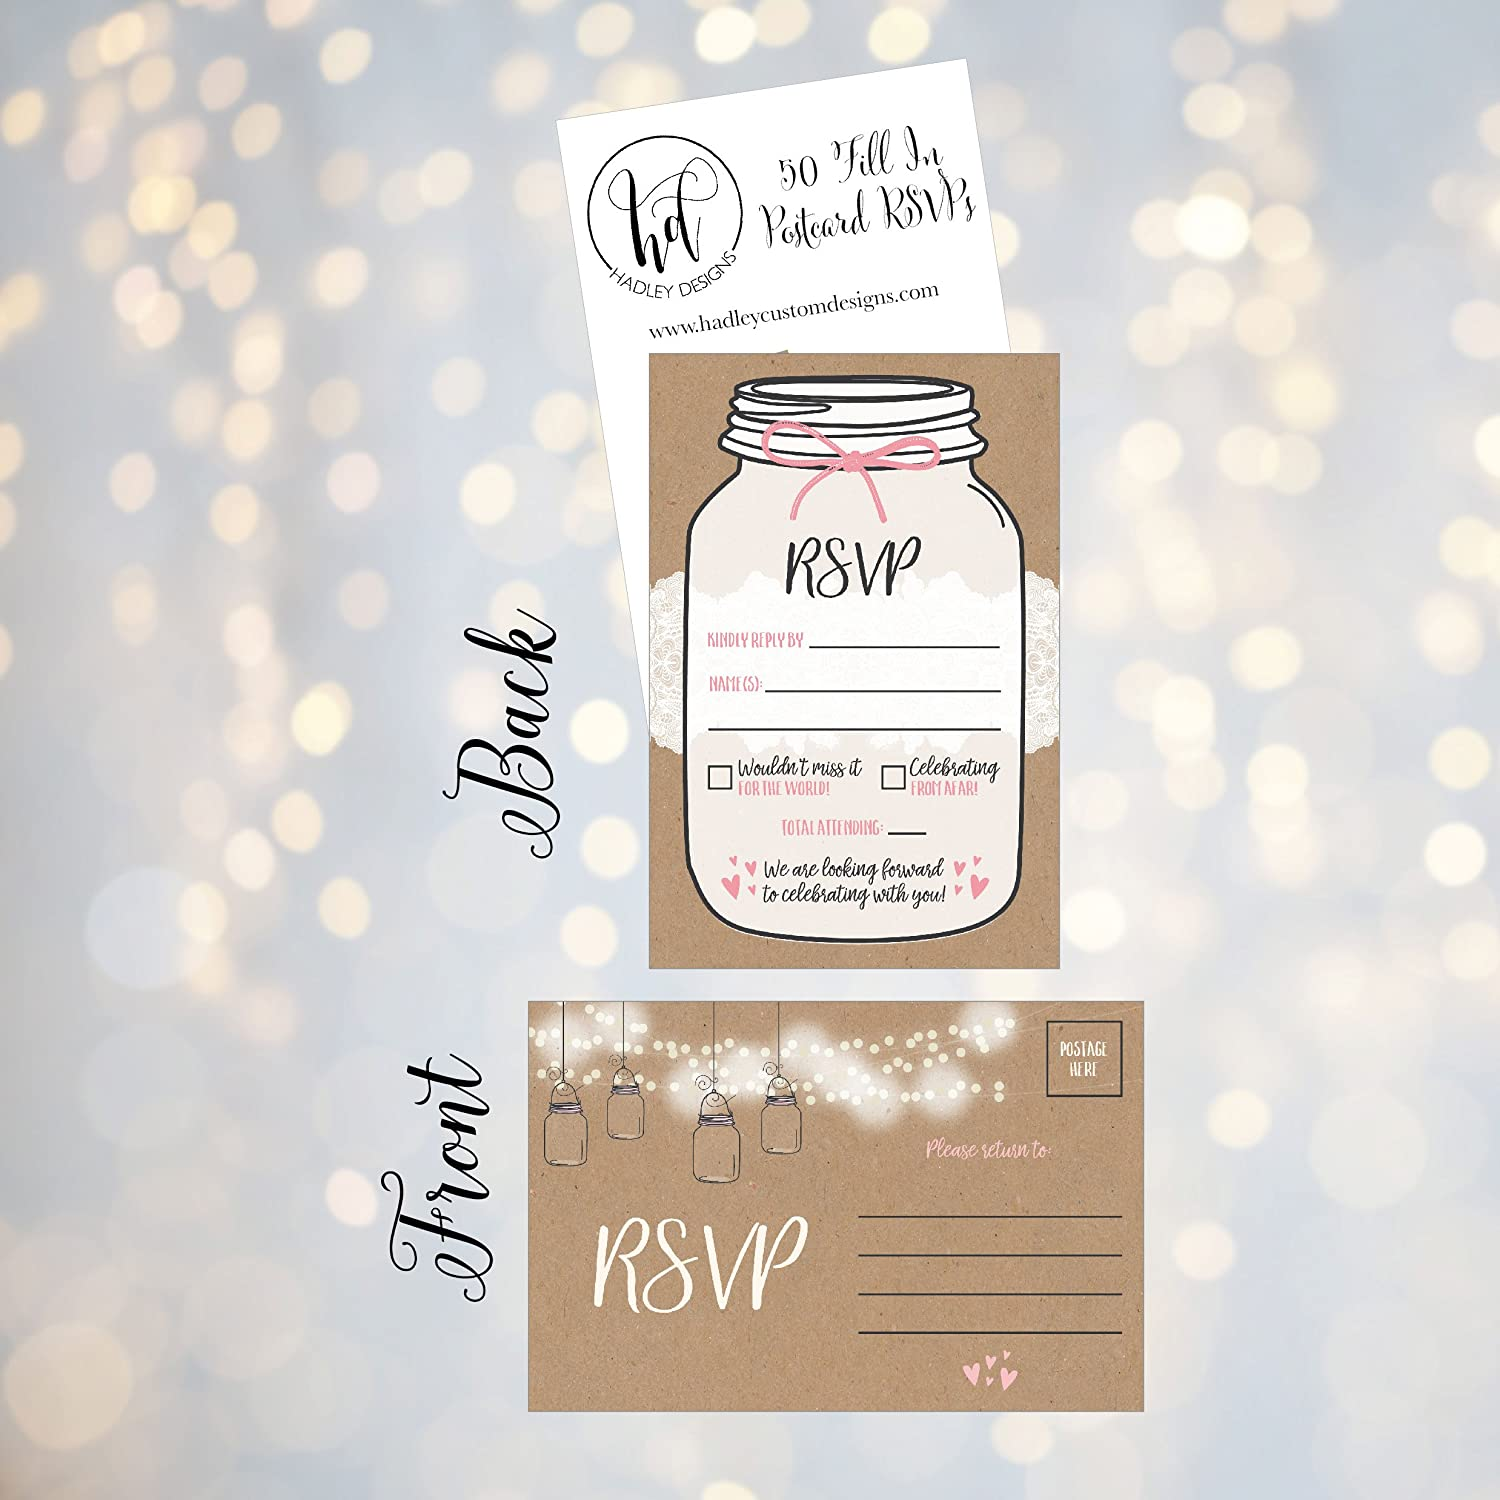 Birthday Blank RSVP Reply 50 Rustic RSVP Cards Bachelorette Party Invitations RSVP for Wedding Bridal RSVP Postcards No Envelopes Needed Baby Shower Rehearsal Dinner Response Card Engagement